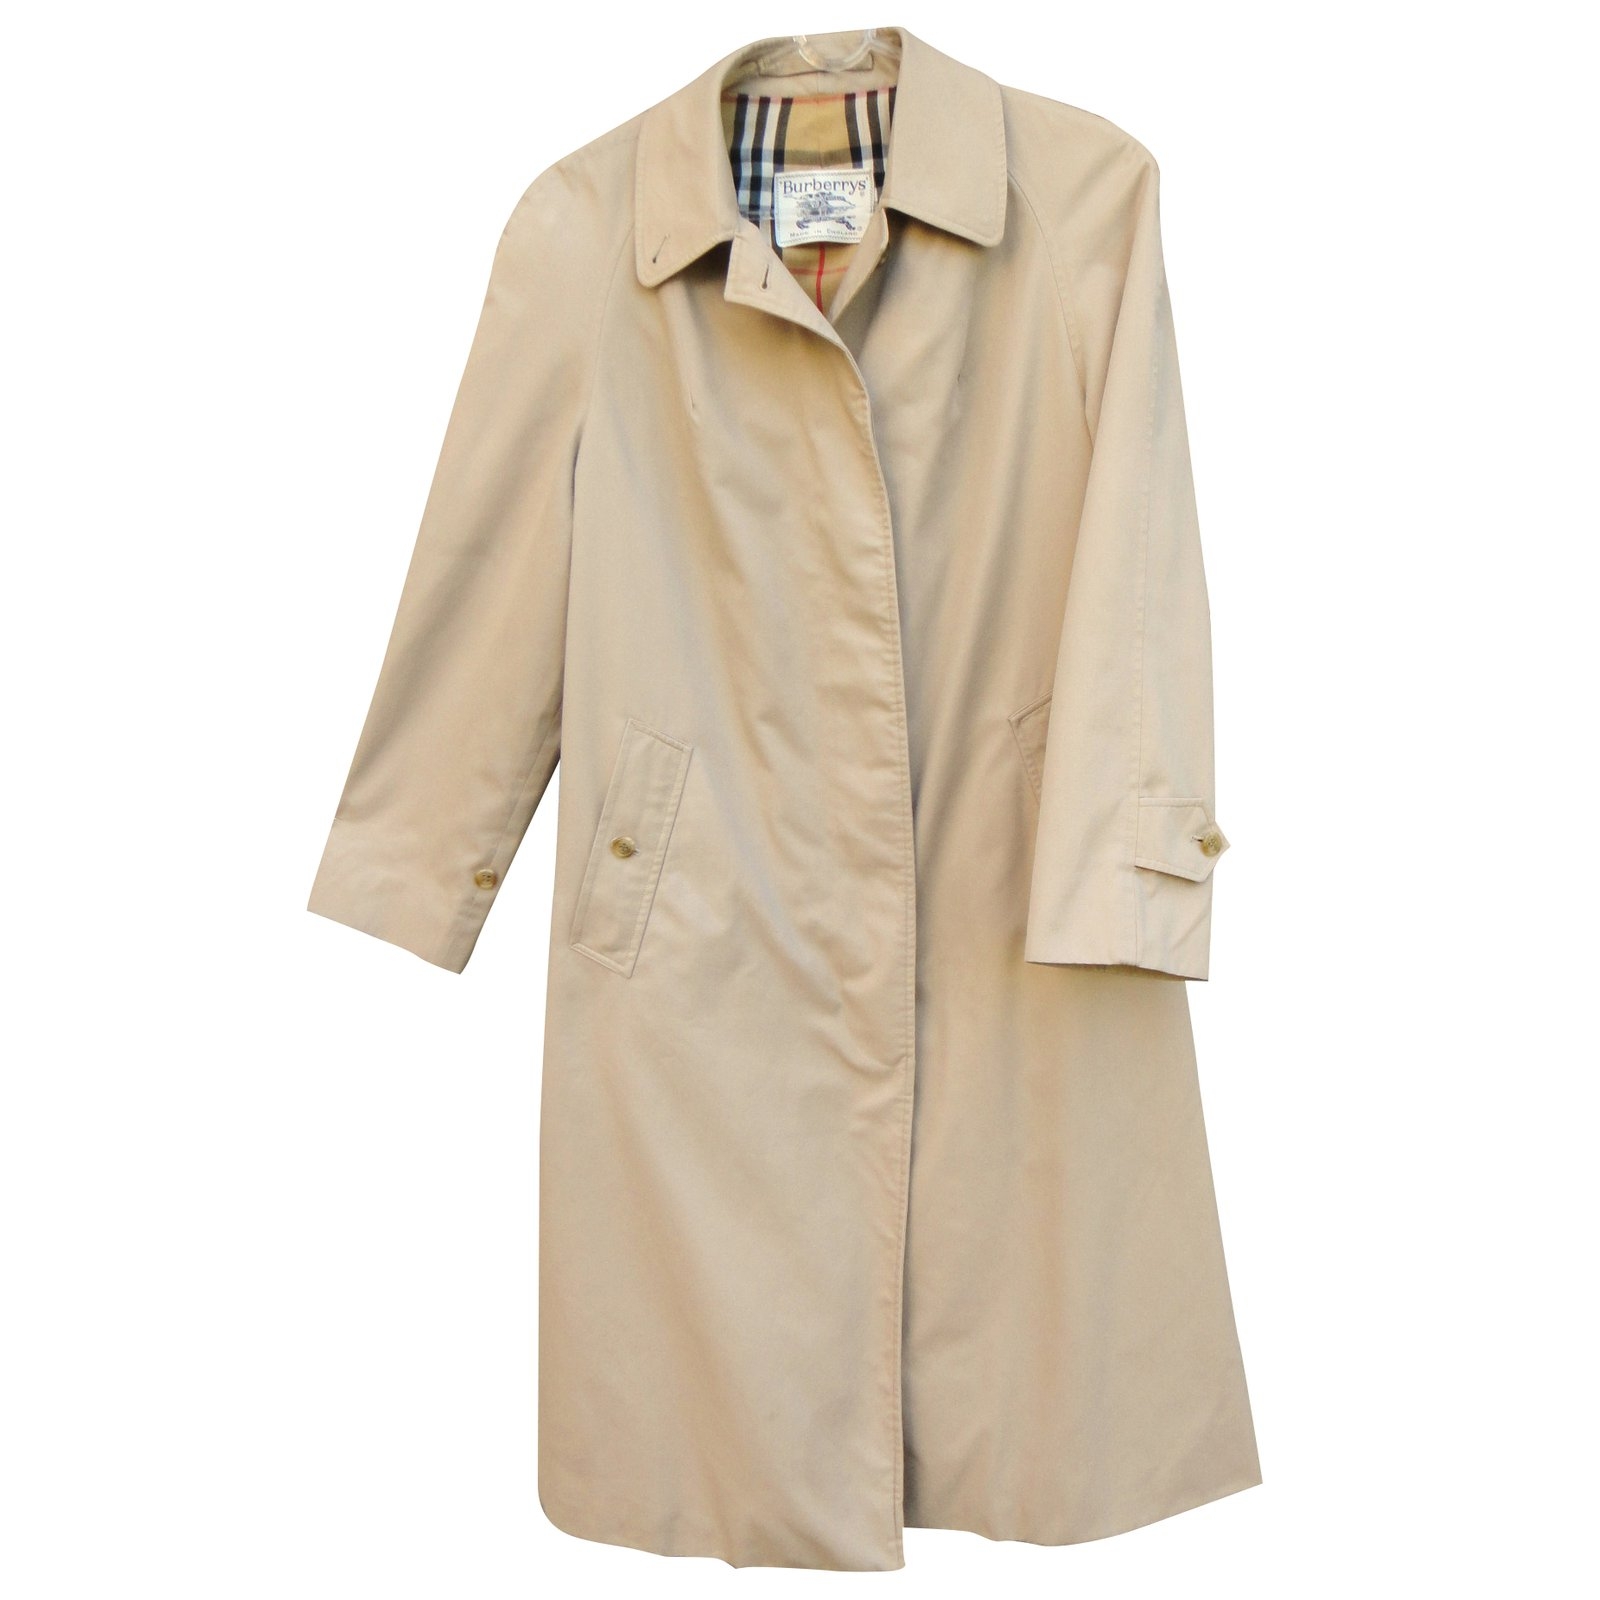 burberry trench coat coats outerwear cotton polyester beige ref